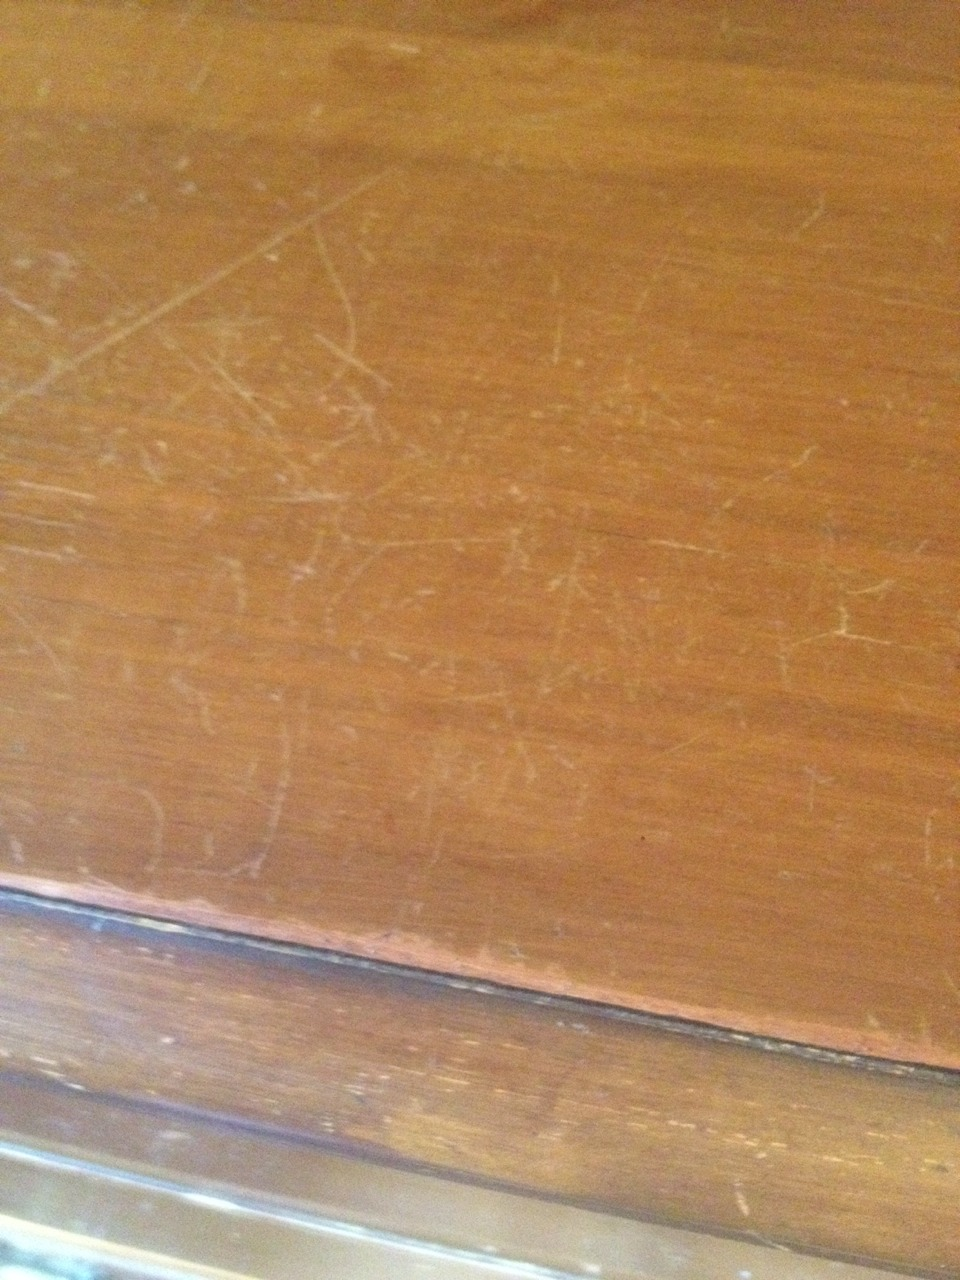 Other end of the scratched up dresser top...